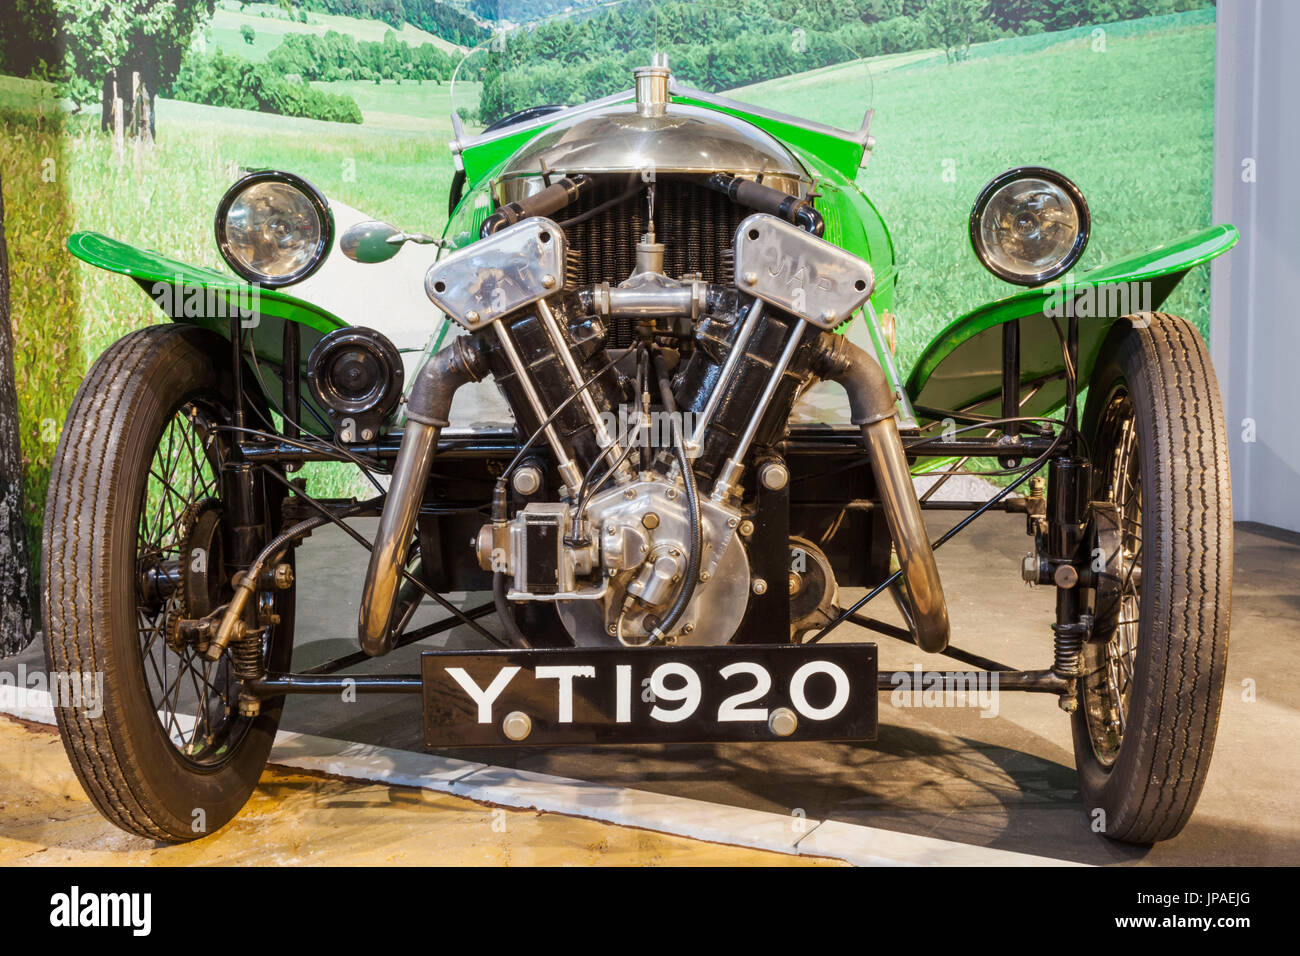 England, Hampshire, New Forest, Beaulieu, The National Motor Museum, Exhibit of Morgan Aero dated 1927 - Stock Image